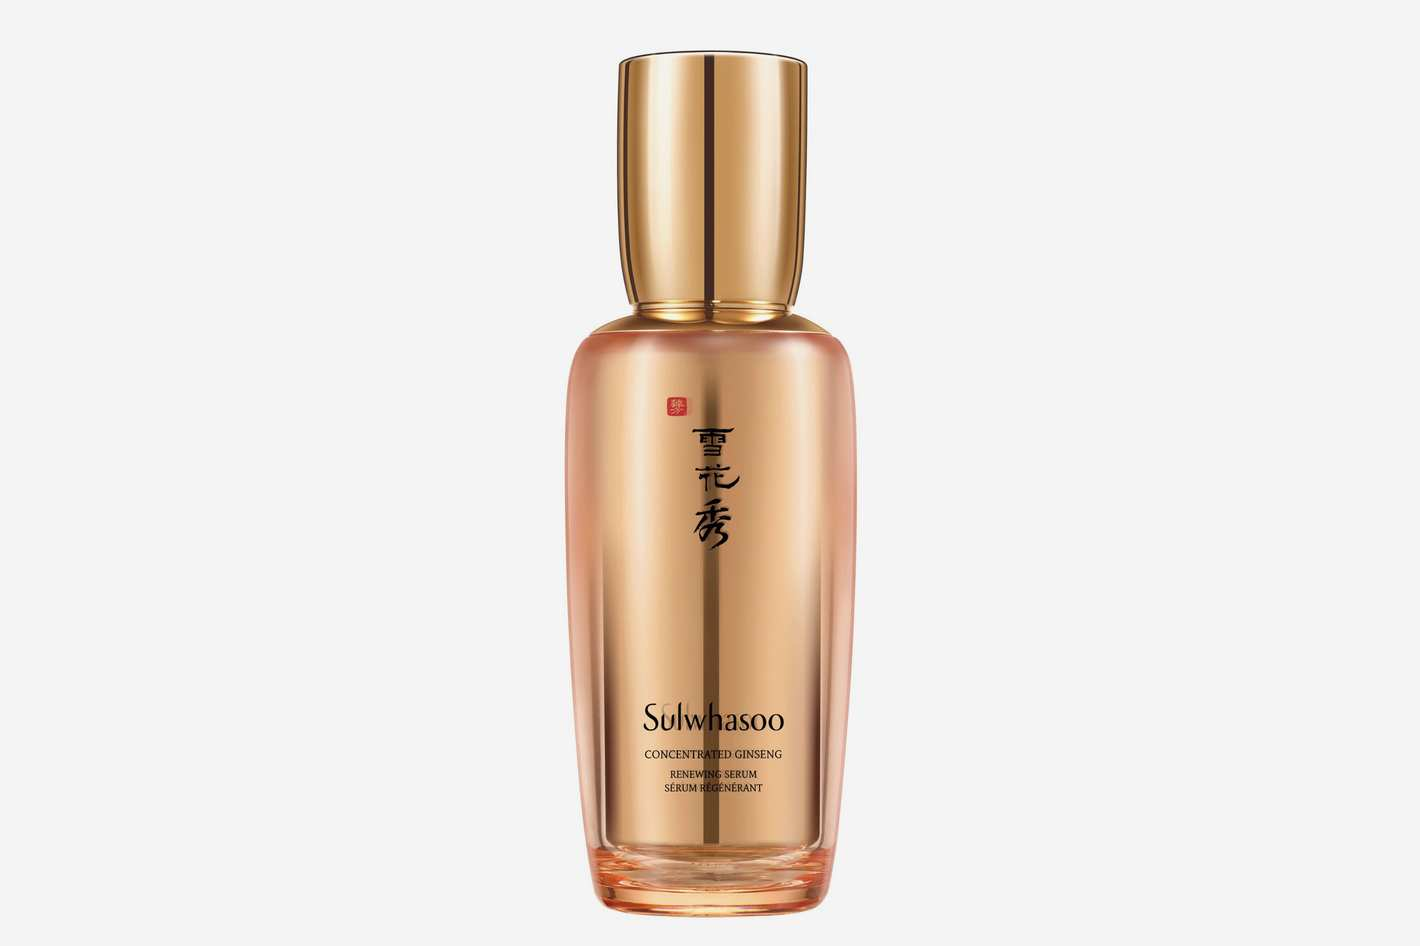 Sulwhasoo Concentrated Ginseng Renewing Serum